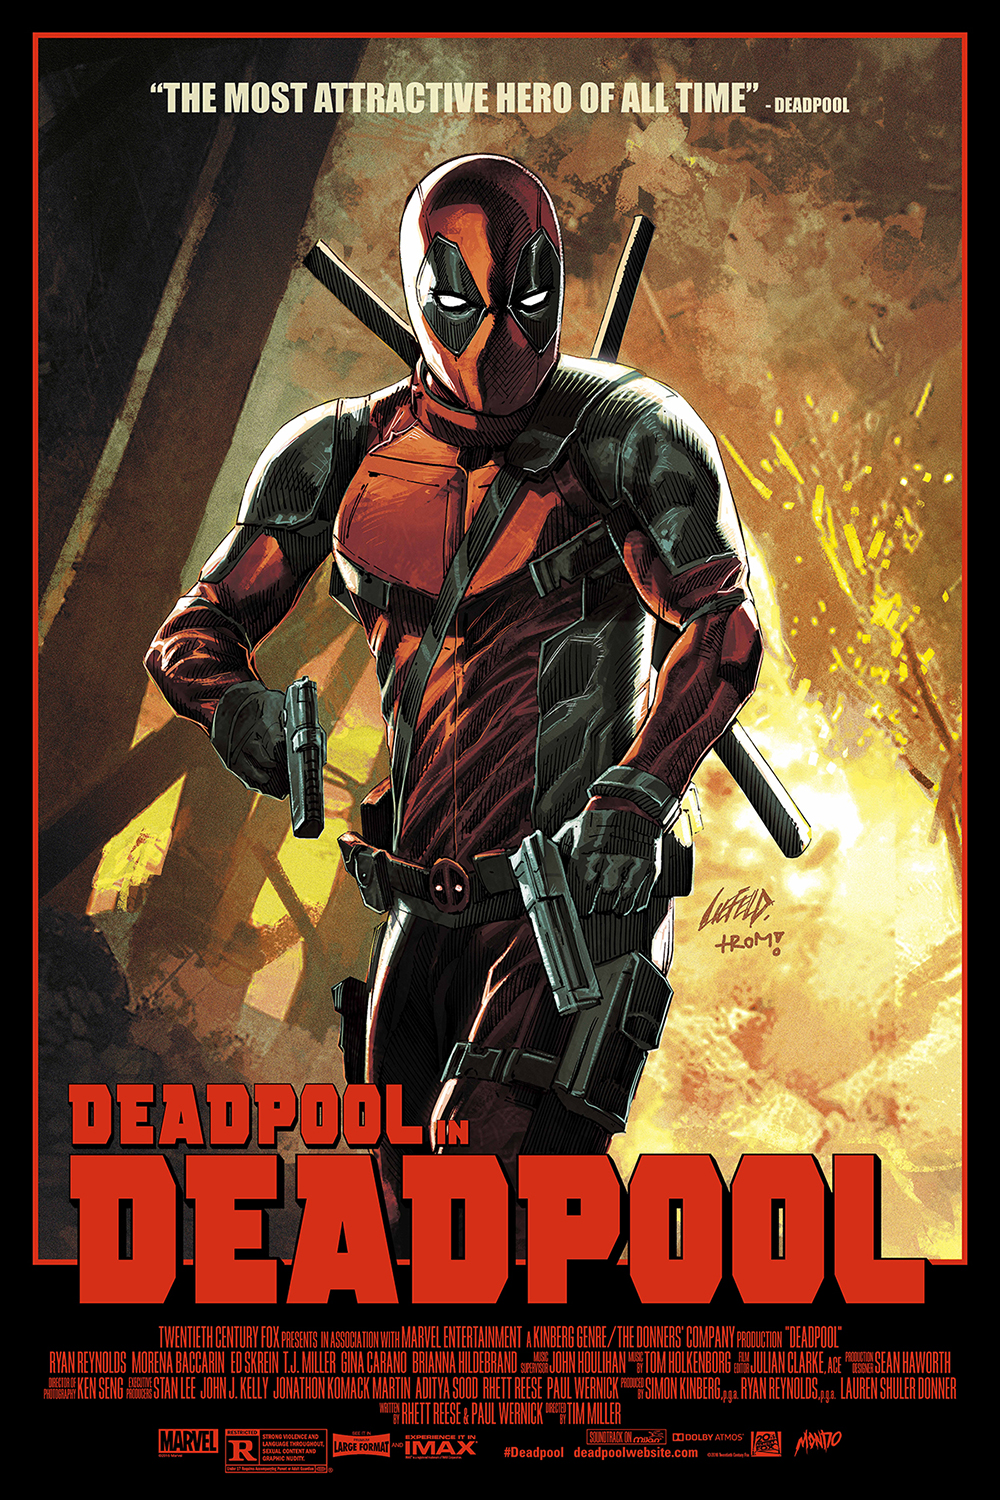 INSIDE THE ROCK POSTER FRAME BLOG: Rob Liefield Deadpool ...